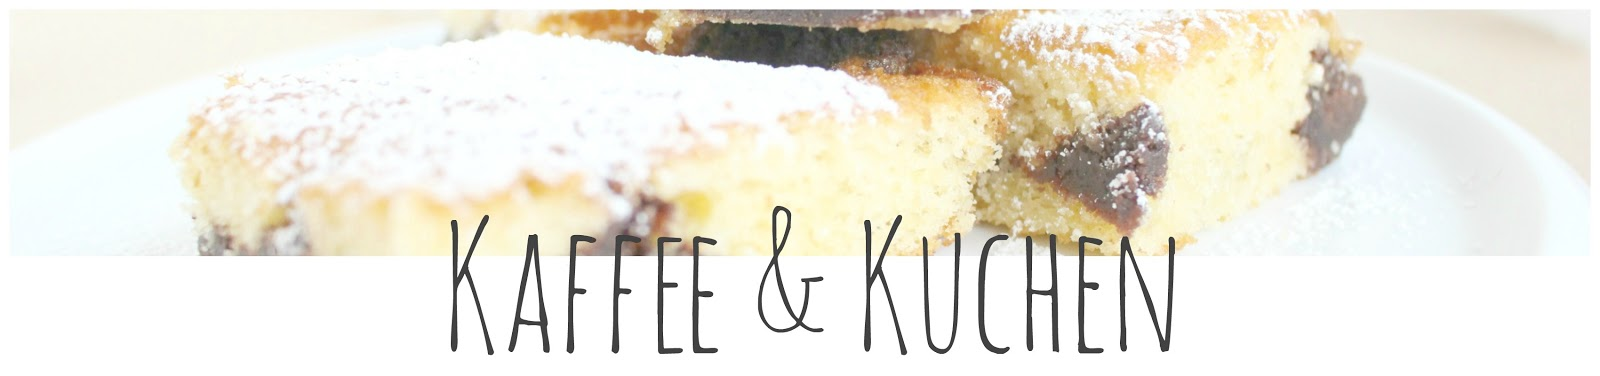 http://lulu-cook-bake-book.blogspot.de/search/label/Kaffee%20und%20Kuchen